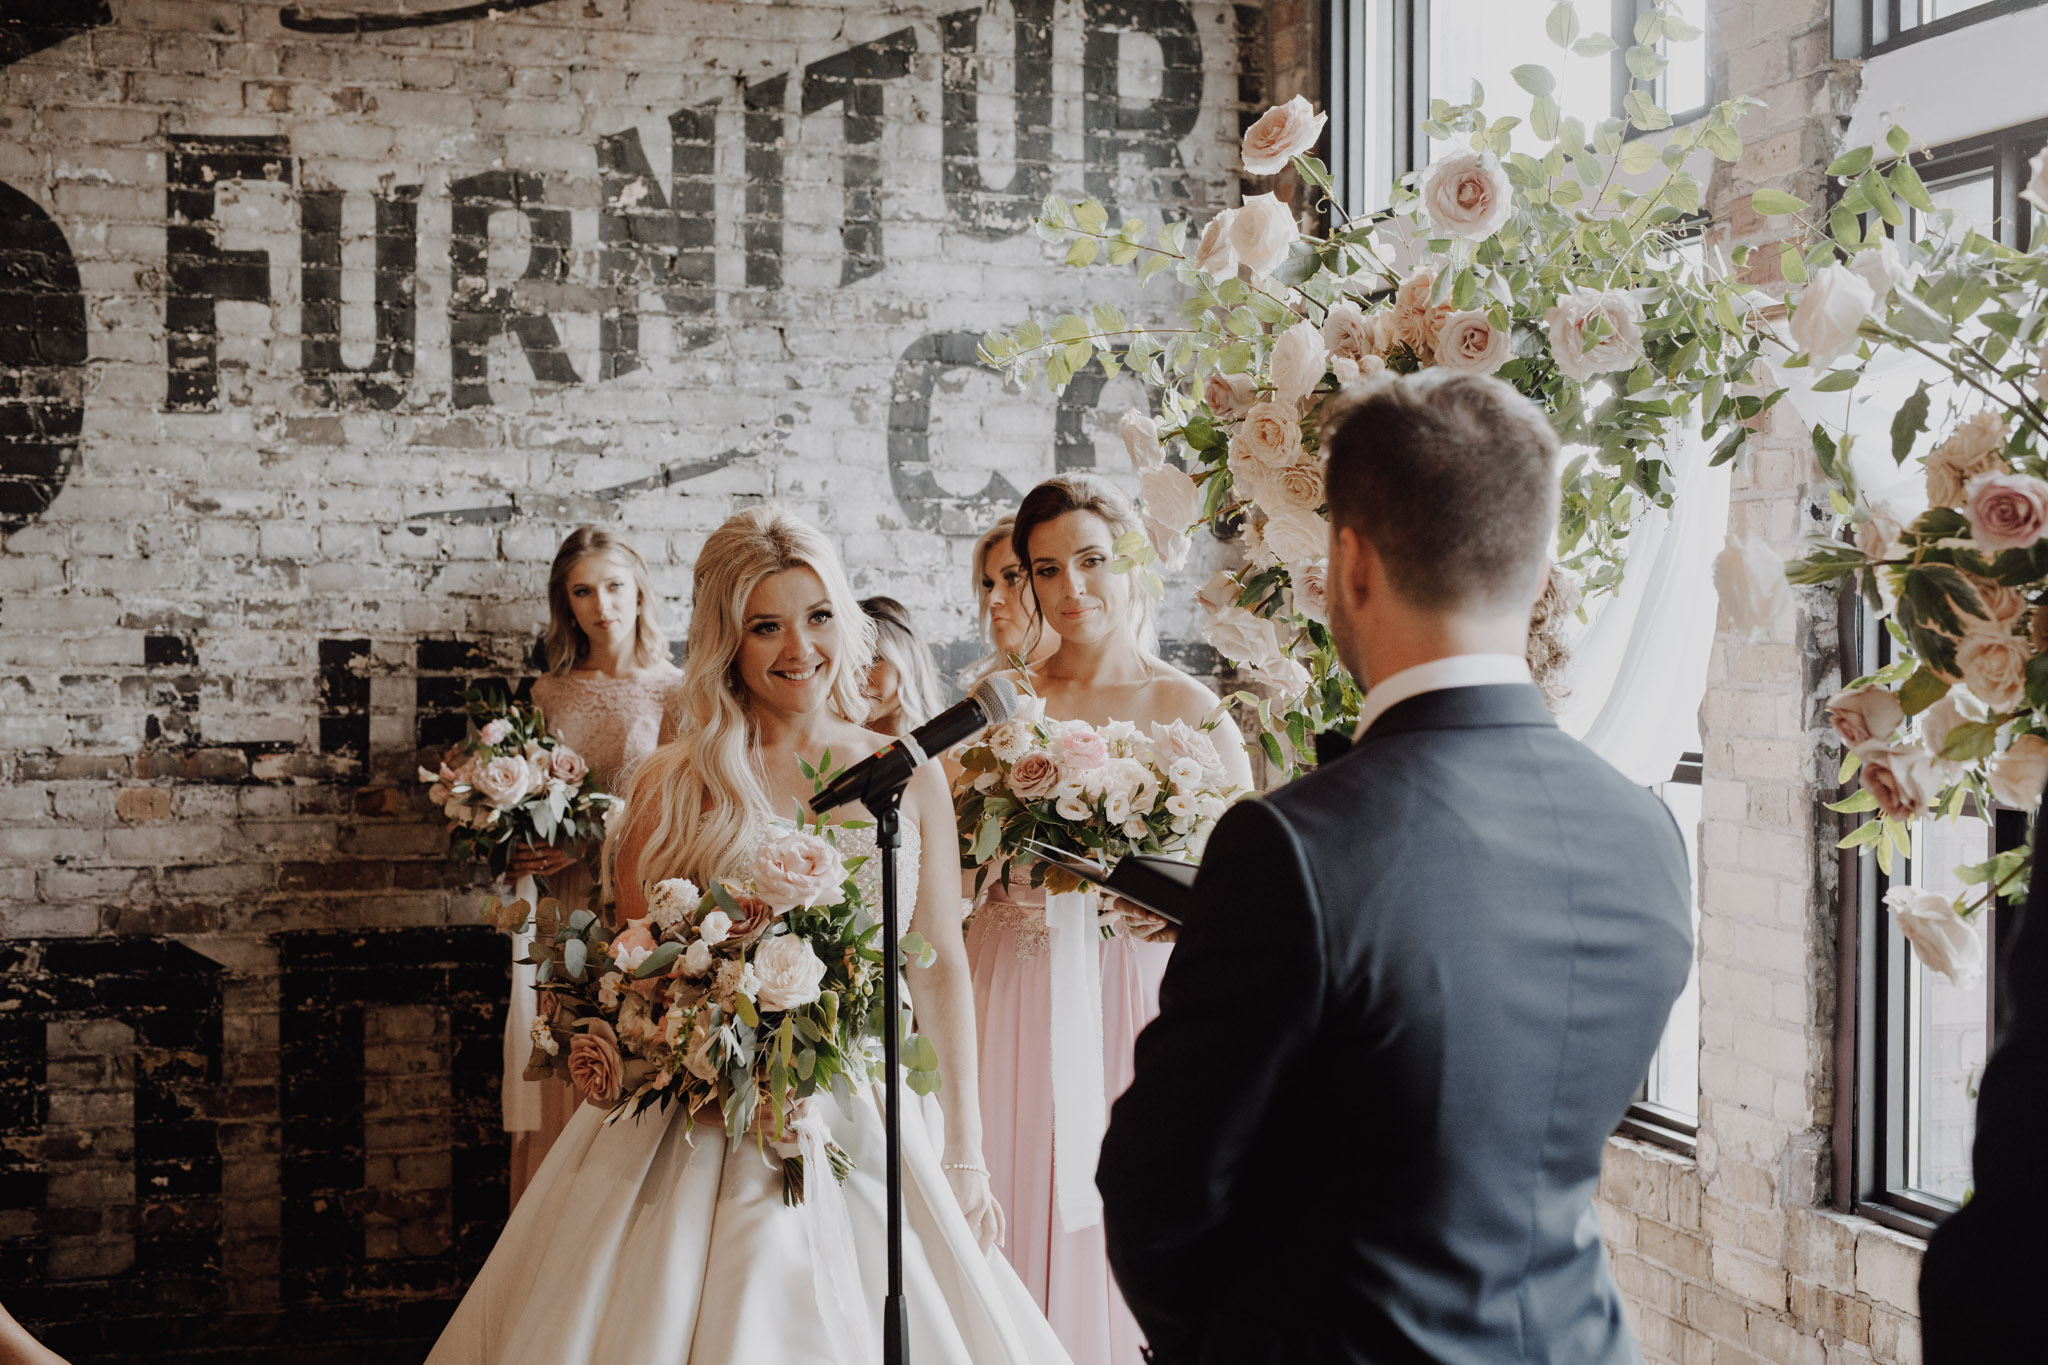 Pink roses decor at The Burroughes Wedding. Love By Lynzie. Wedding Photographer Jennifer See Studios.